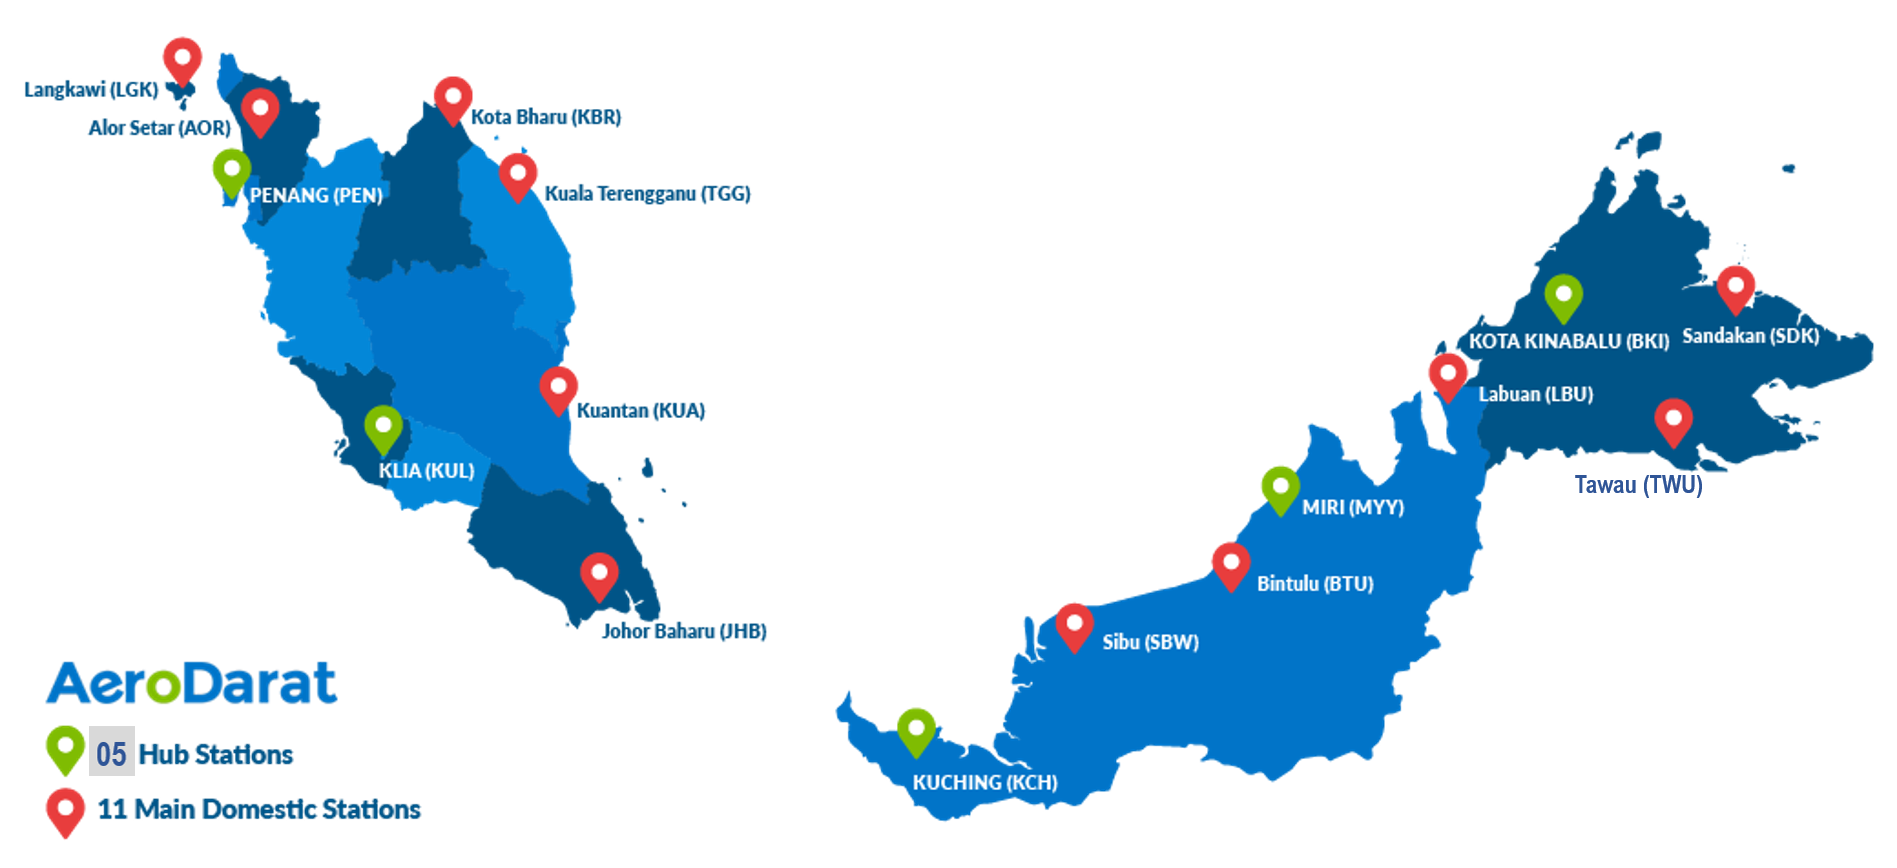 https://www.aerodarat.com/wp-content/uploads/2018/10/Our-Locations-Revised.png